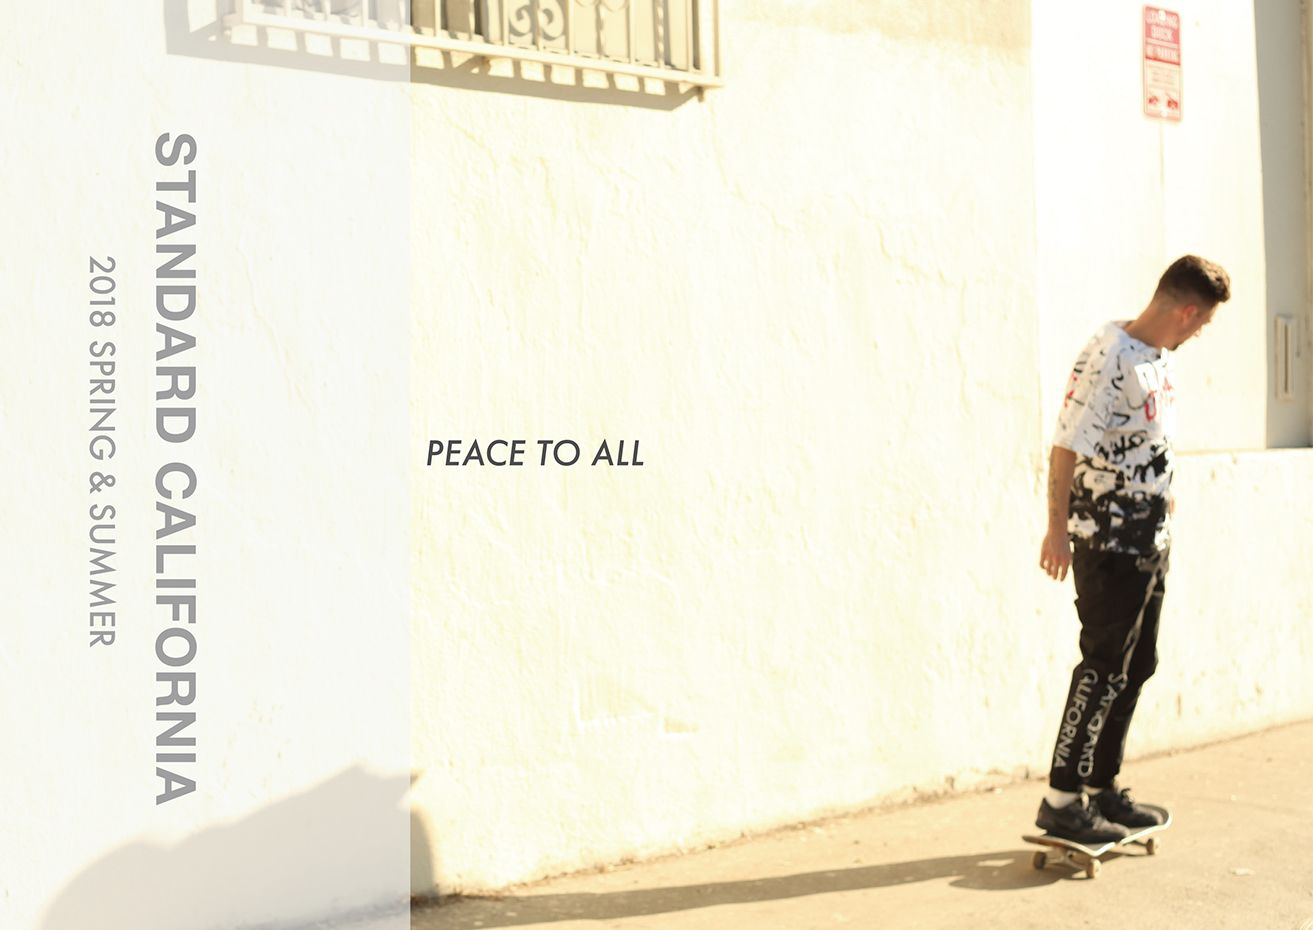 peace to all.  #standardcalifornia #スタンダードカリフォルニア #california #恵比寿 #peacetoall #18SS